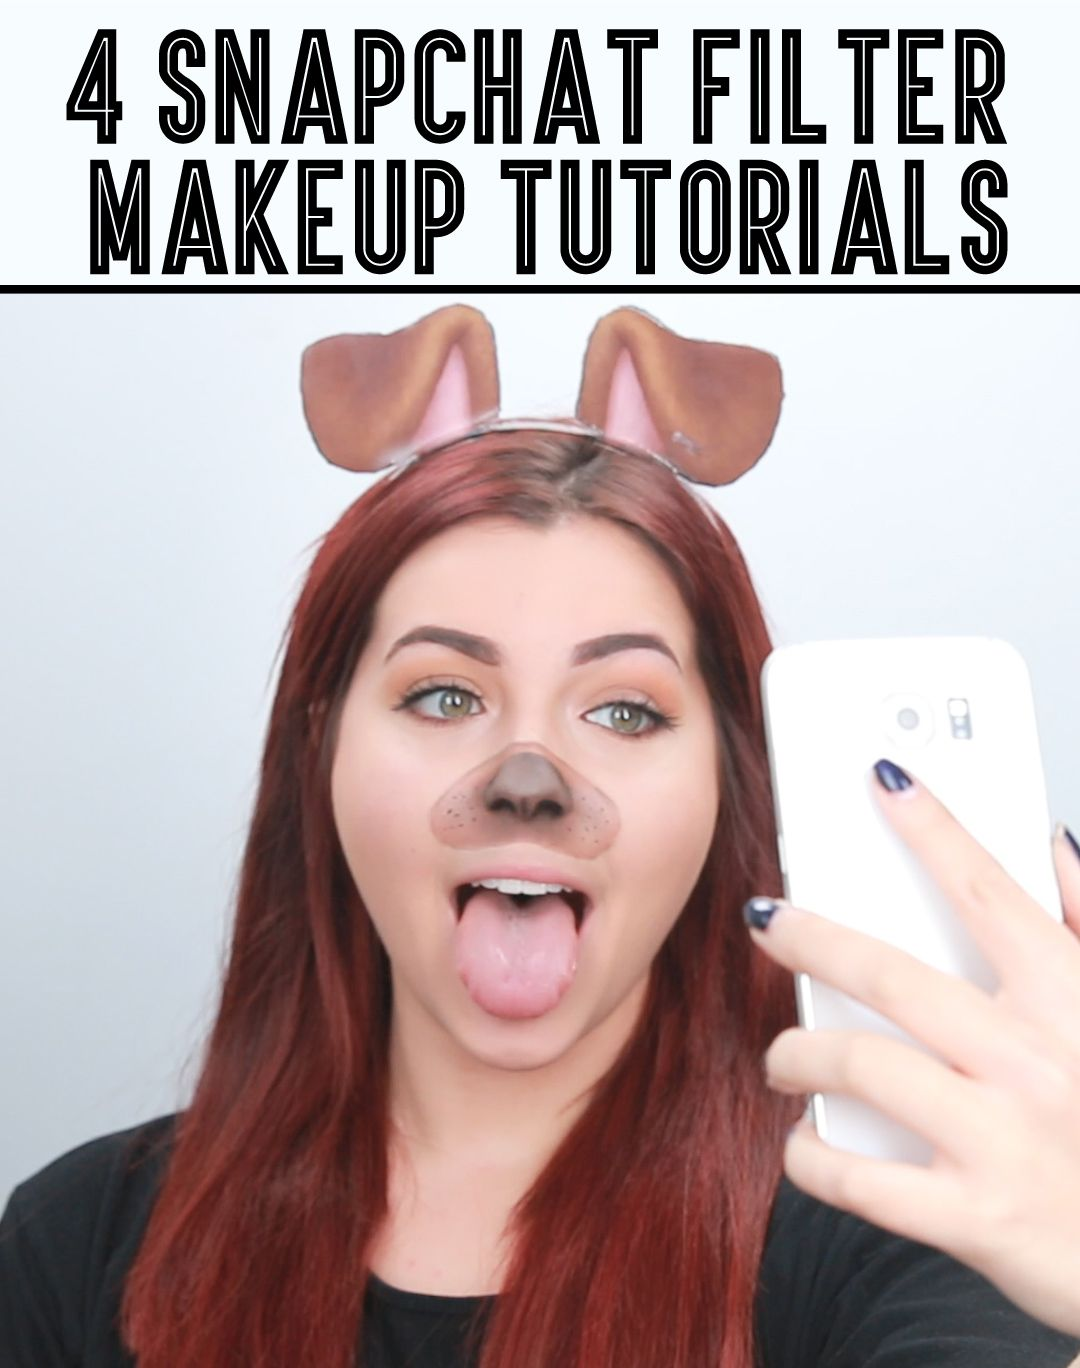 Snapchat filters IRL and their makeup tutorials Snapchat